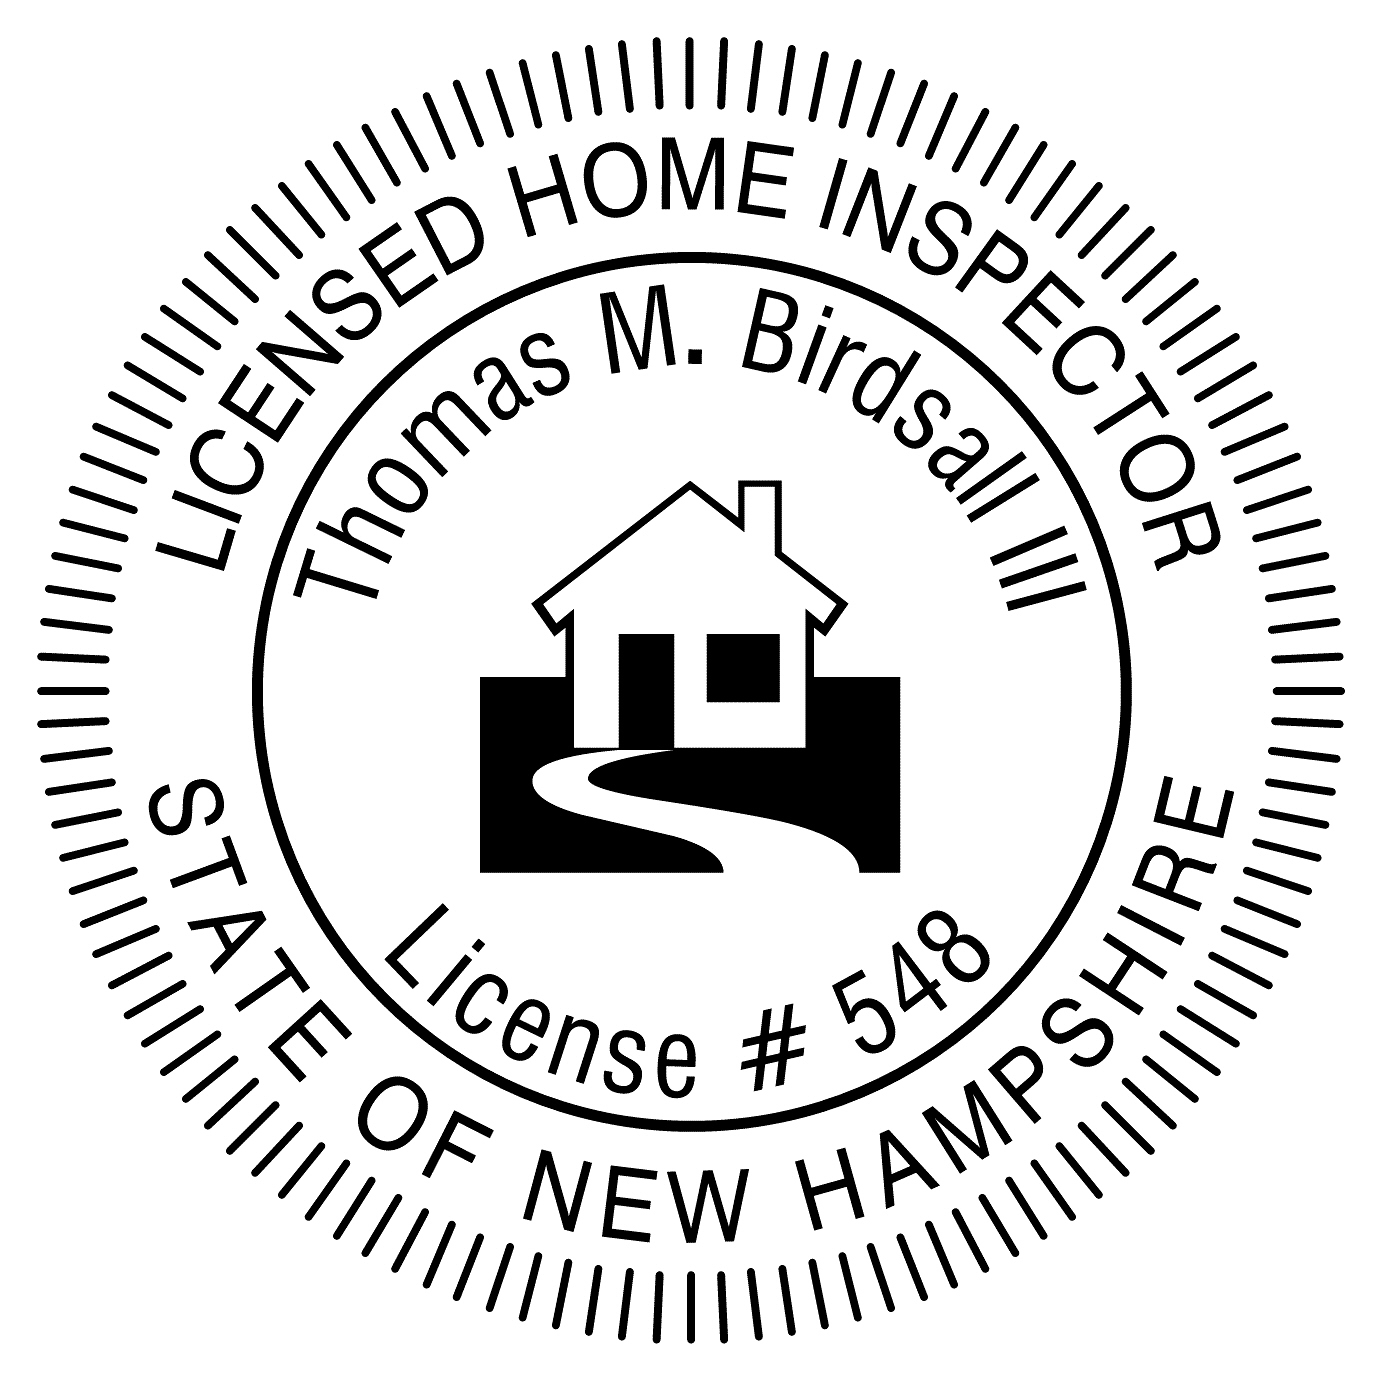 New Hampshire State Home Inspector